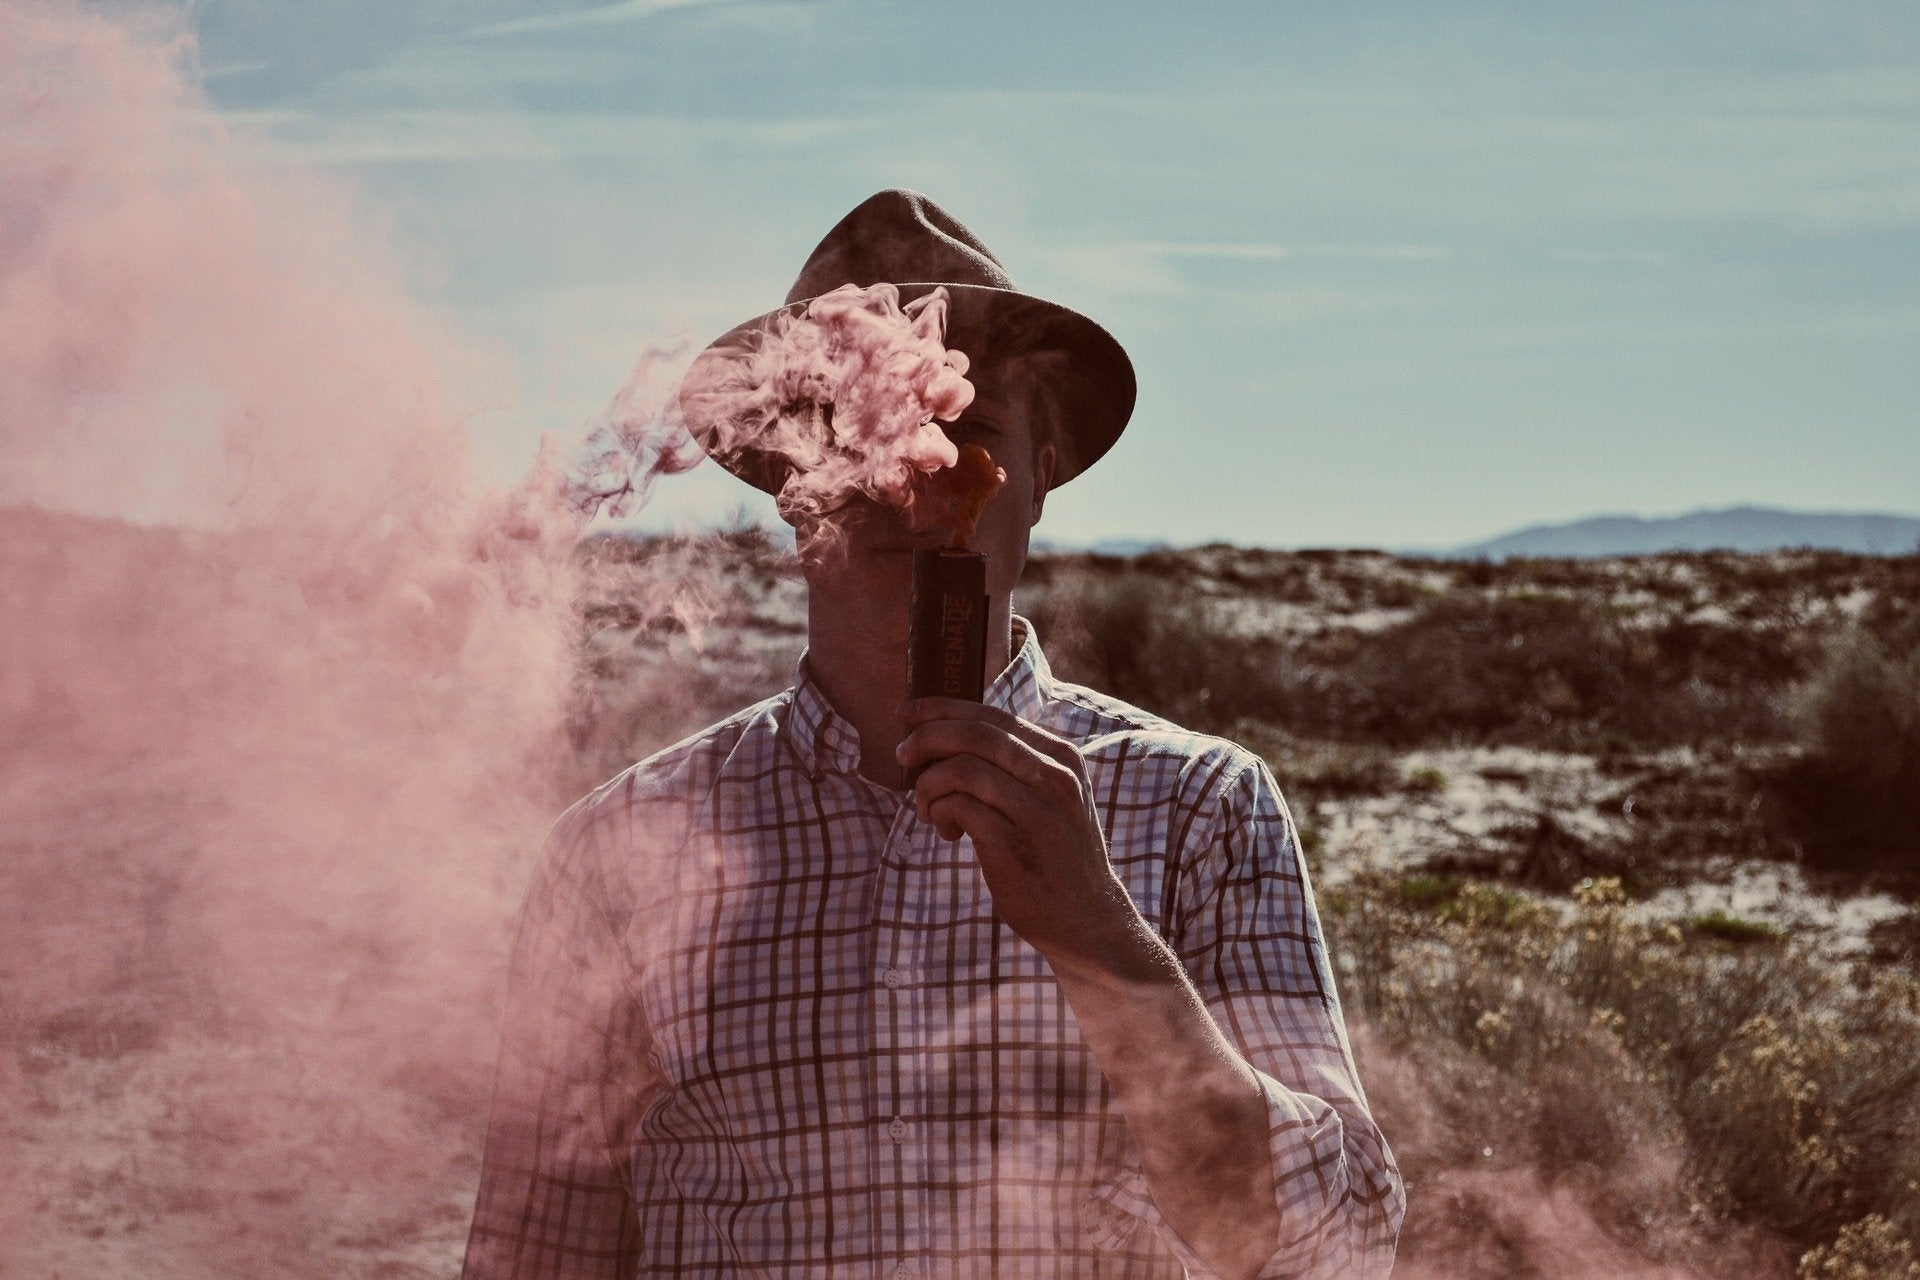 person vaping in a bushing with pink smoke